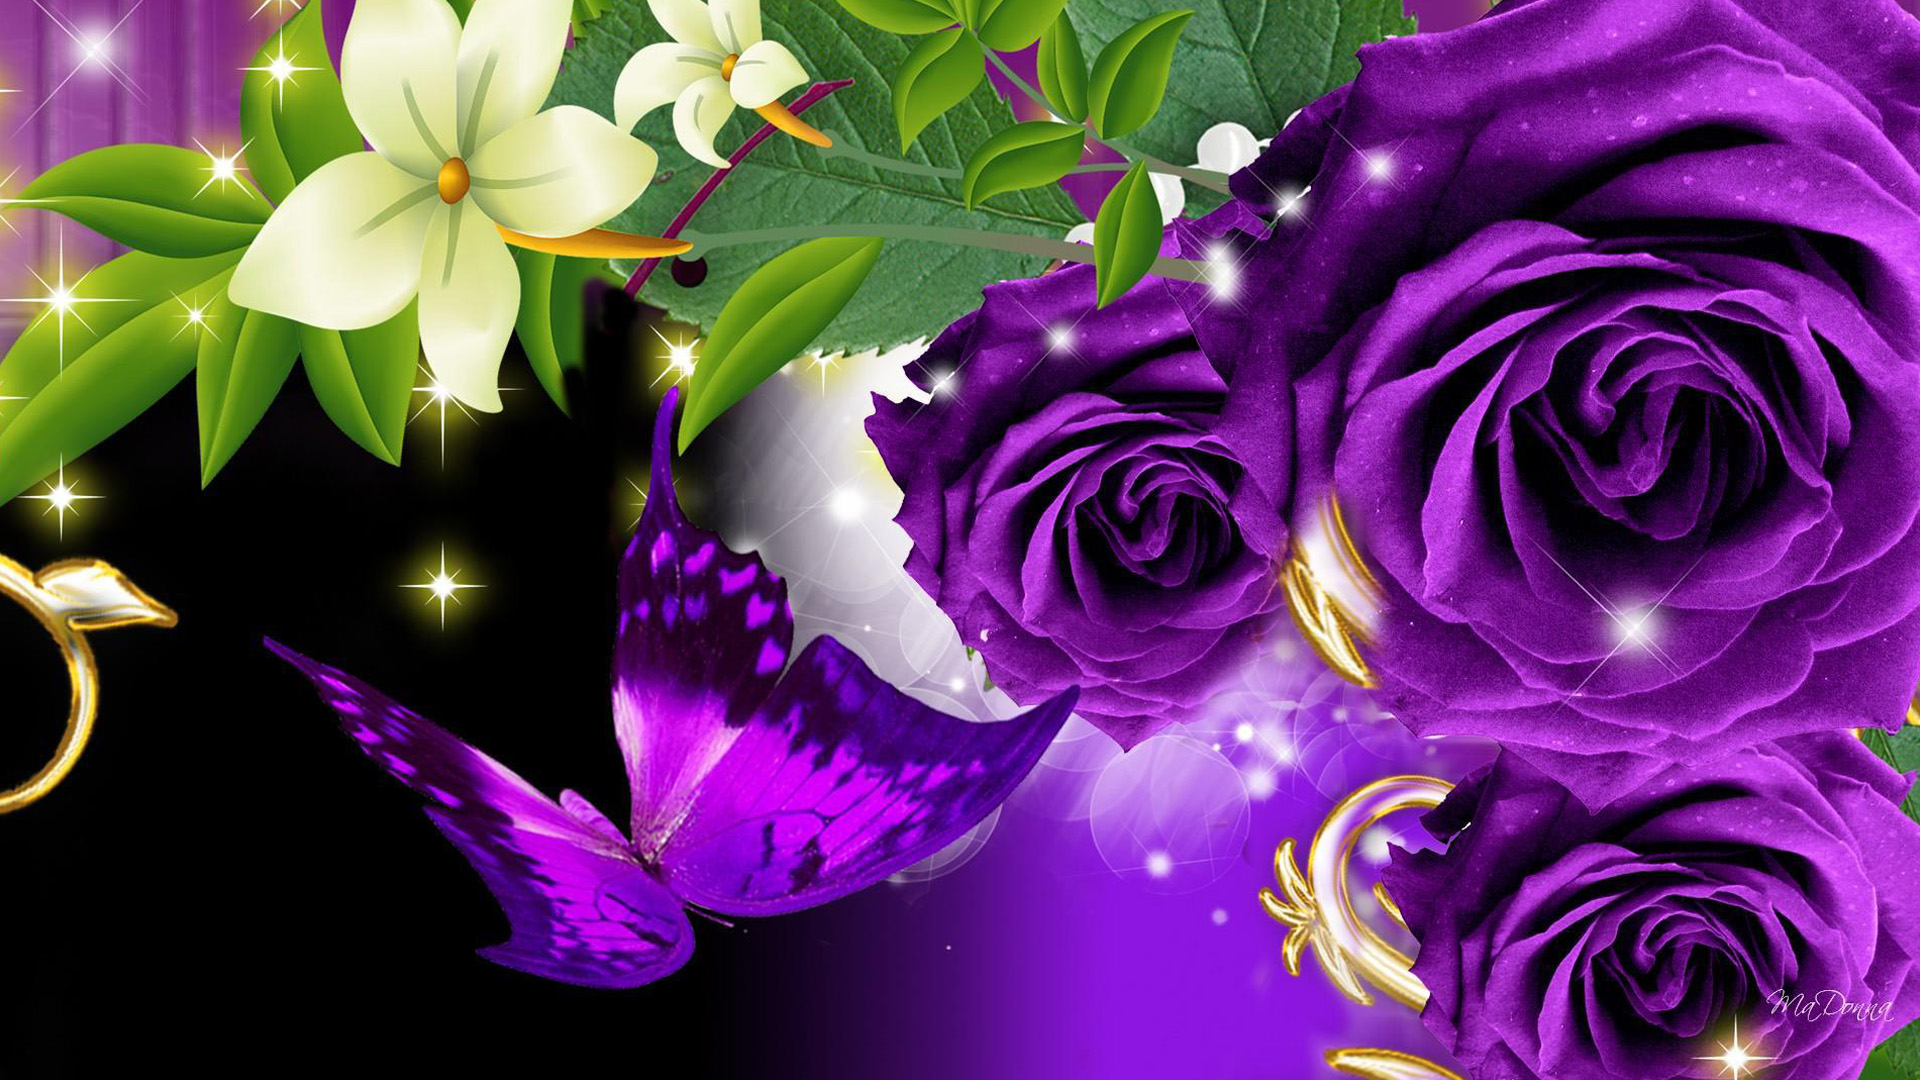 Top 10 beautiful flowers live wallpapers apps for android izmirmasajfo